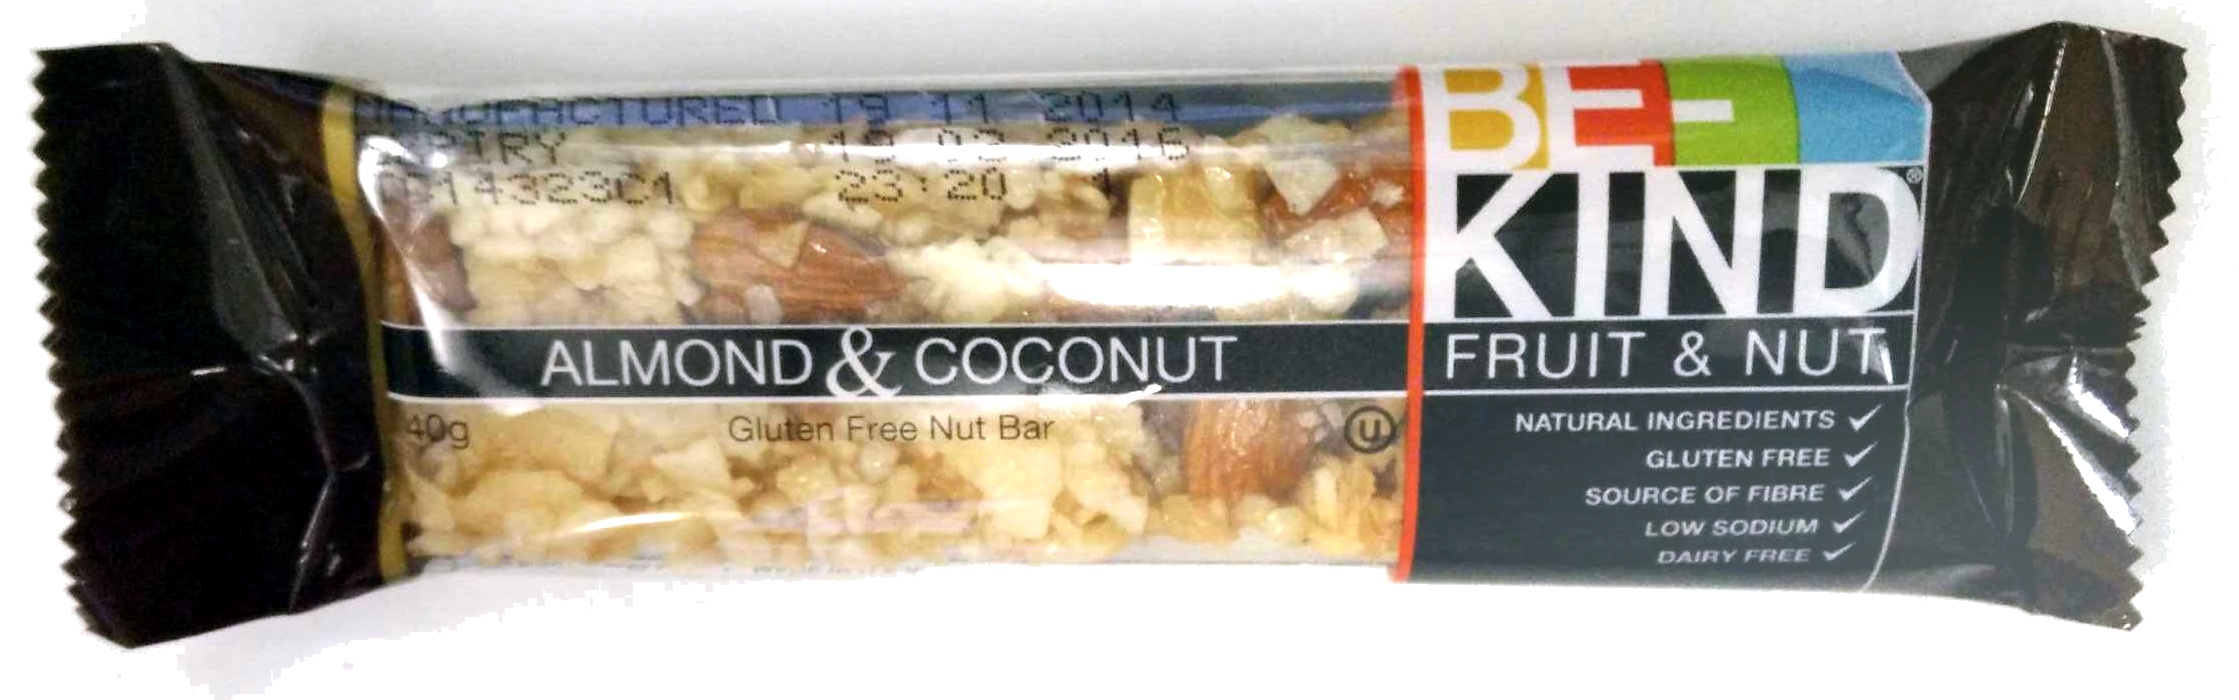 Almond & Coconut Fruit & Nut Bar - Produit - fr